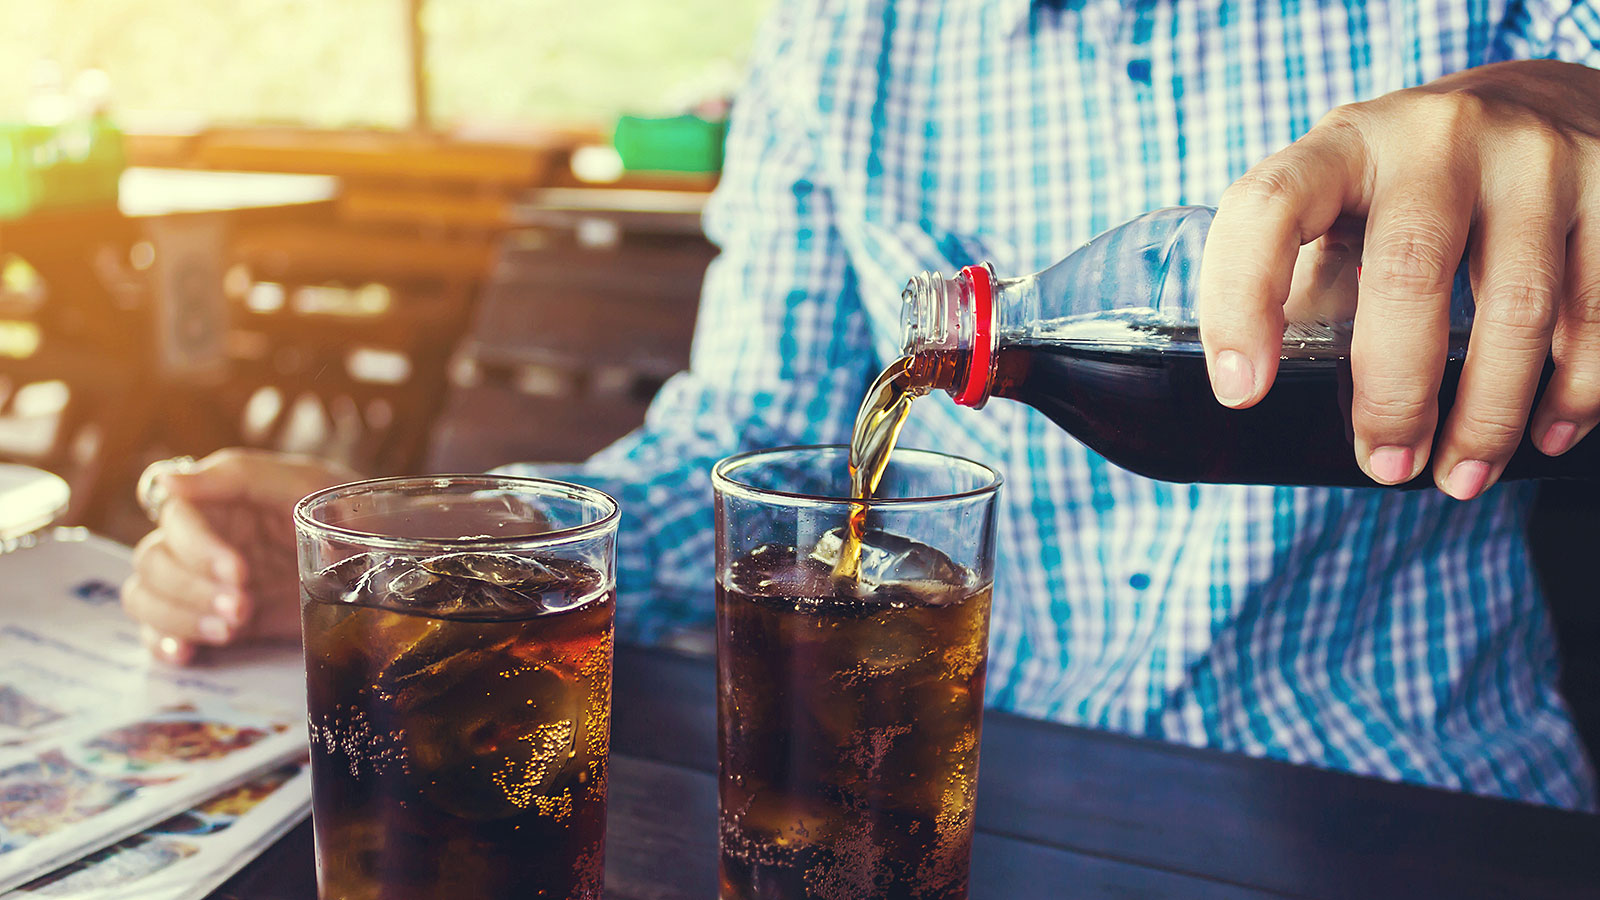 Diet and regular soda linked to increased risk of death in study of 425,000 people